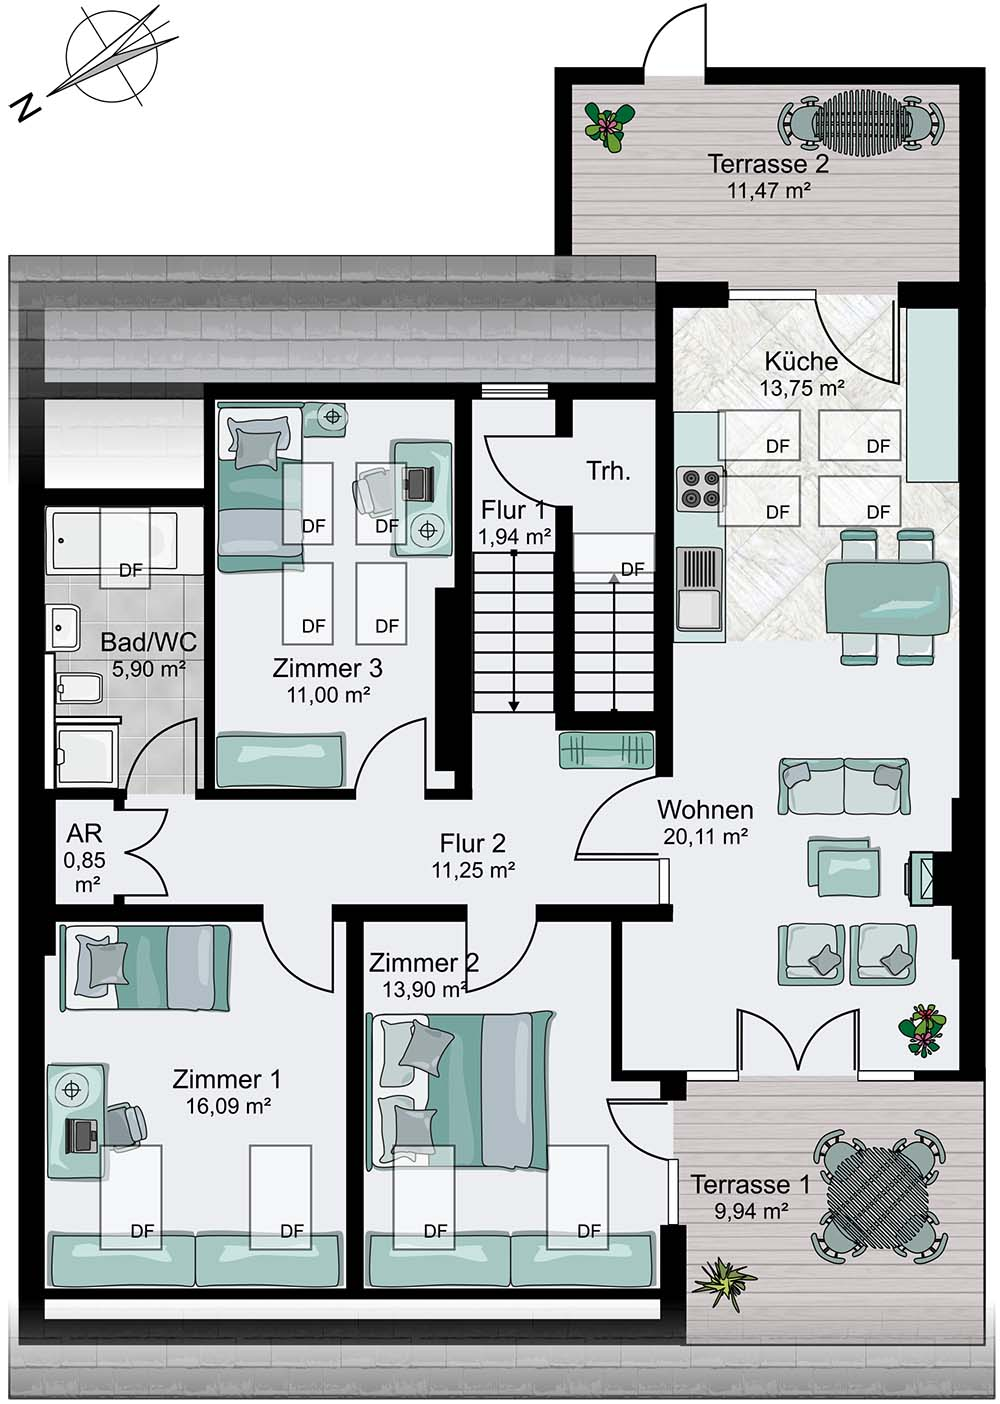 The suggested floorplan... If we go ahead with the project, our version will look very different!